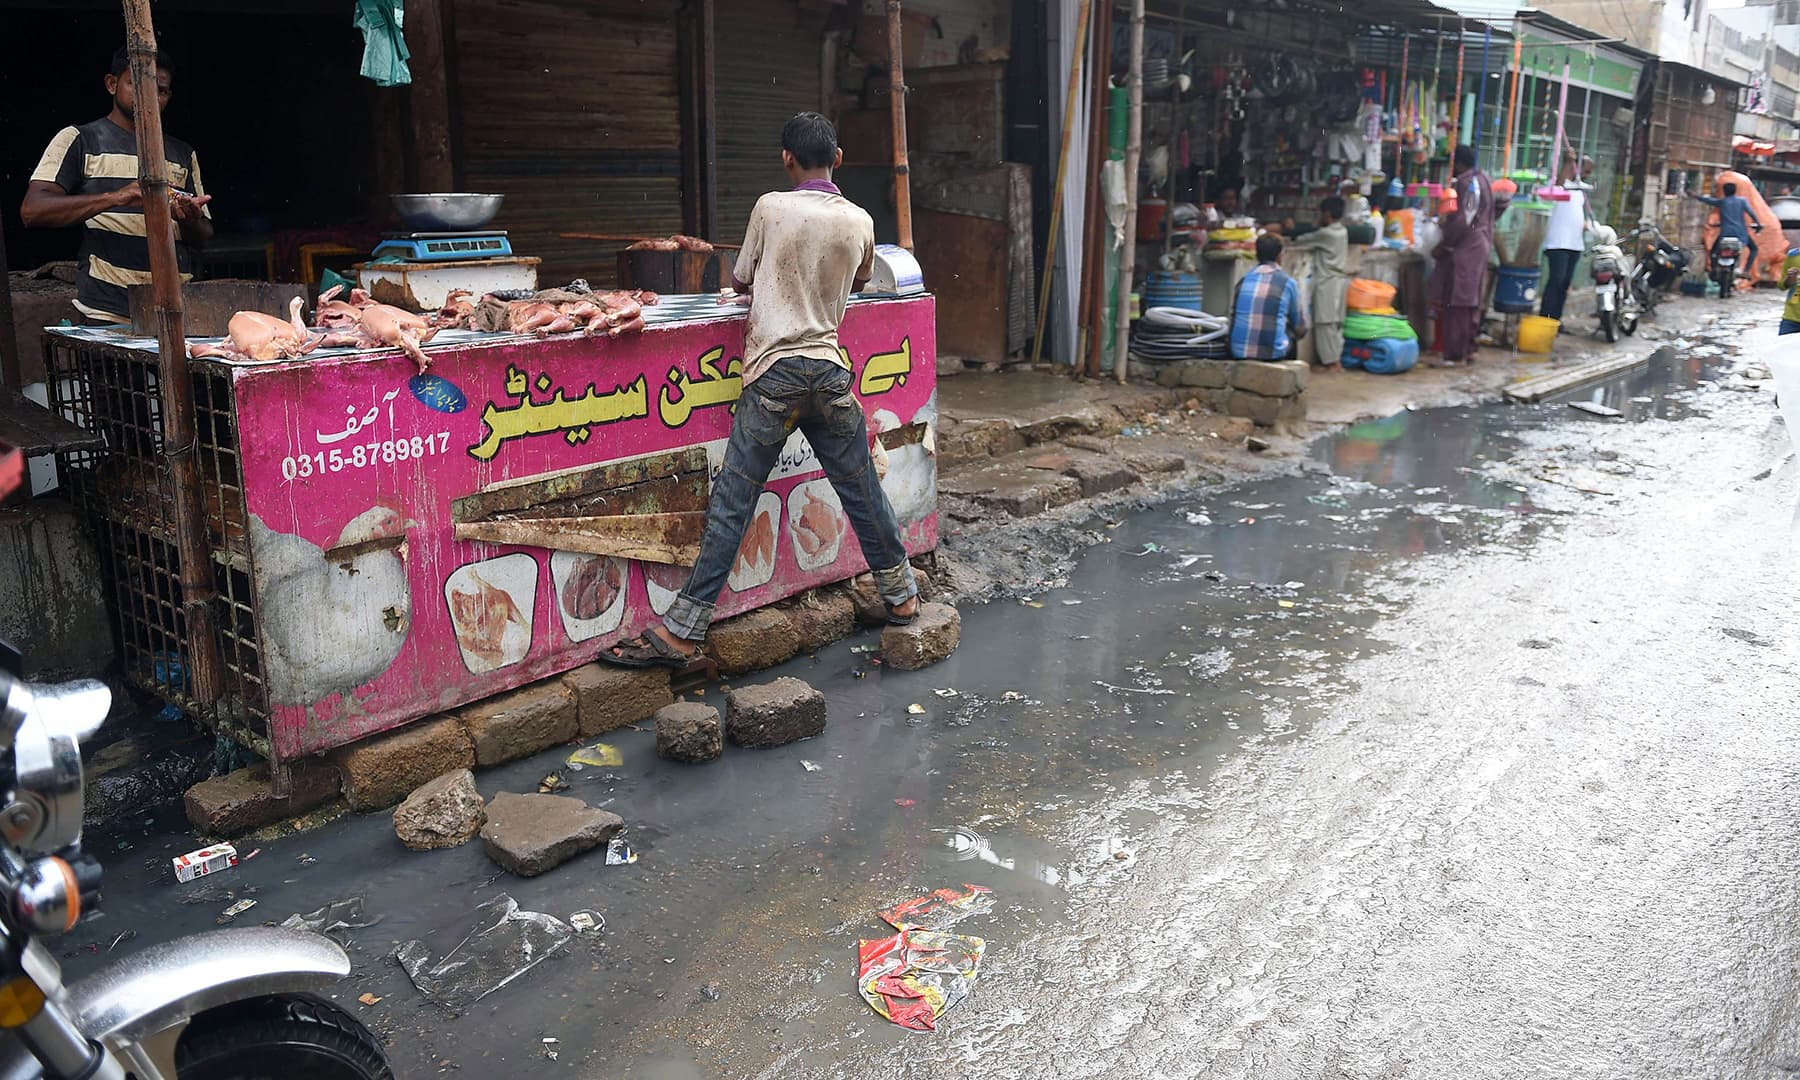 In this picture taken on August 31, a butcher's stall is pictured next to a street flooded with rainwater in a market in Karachi. — AFP